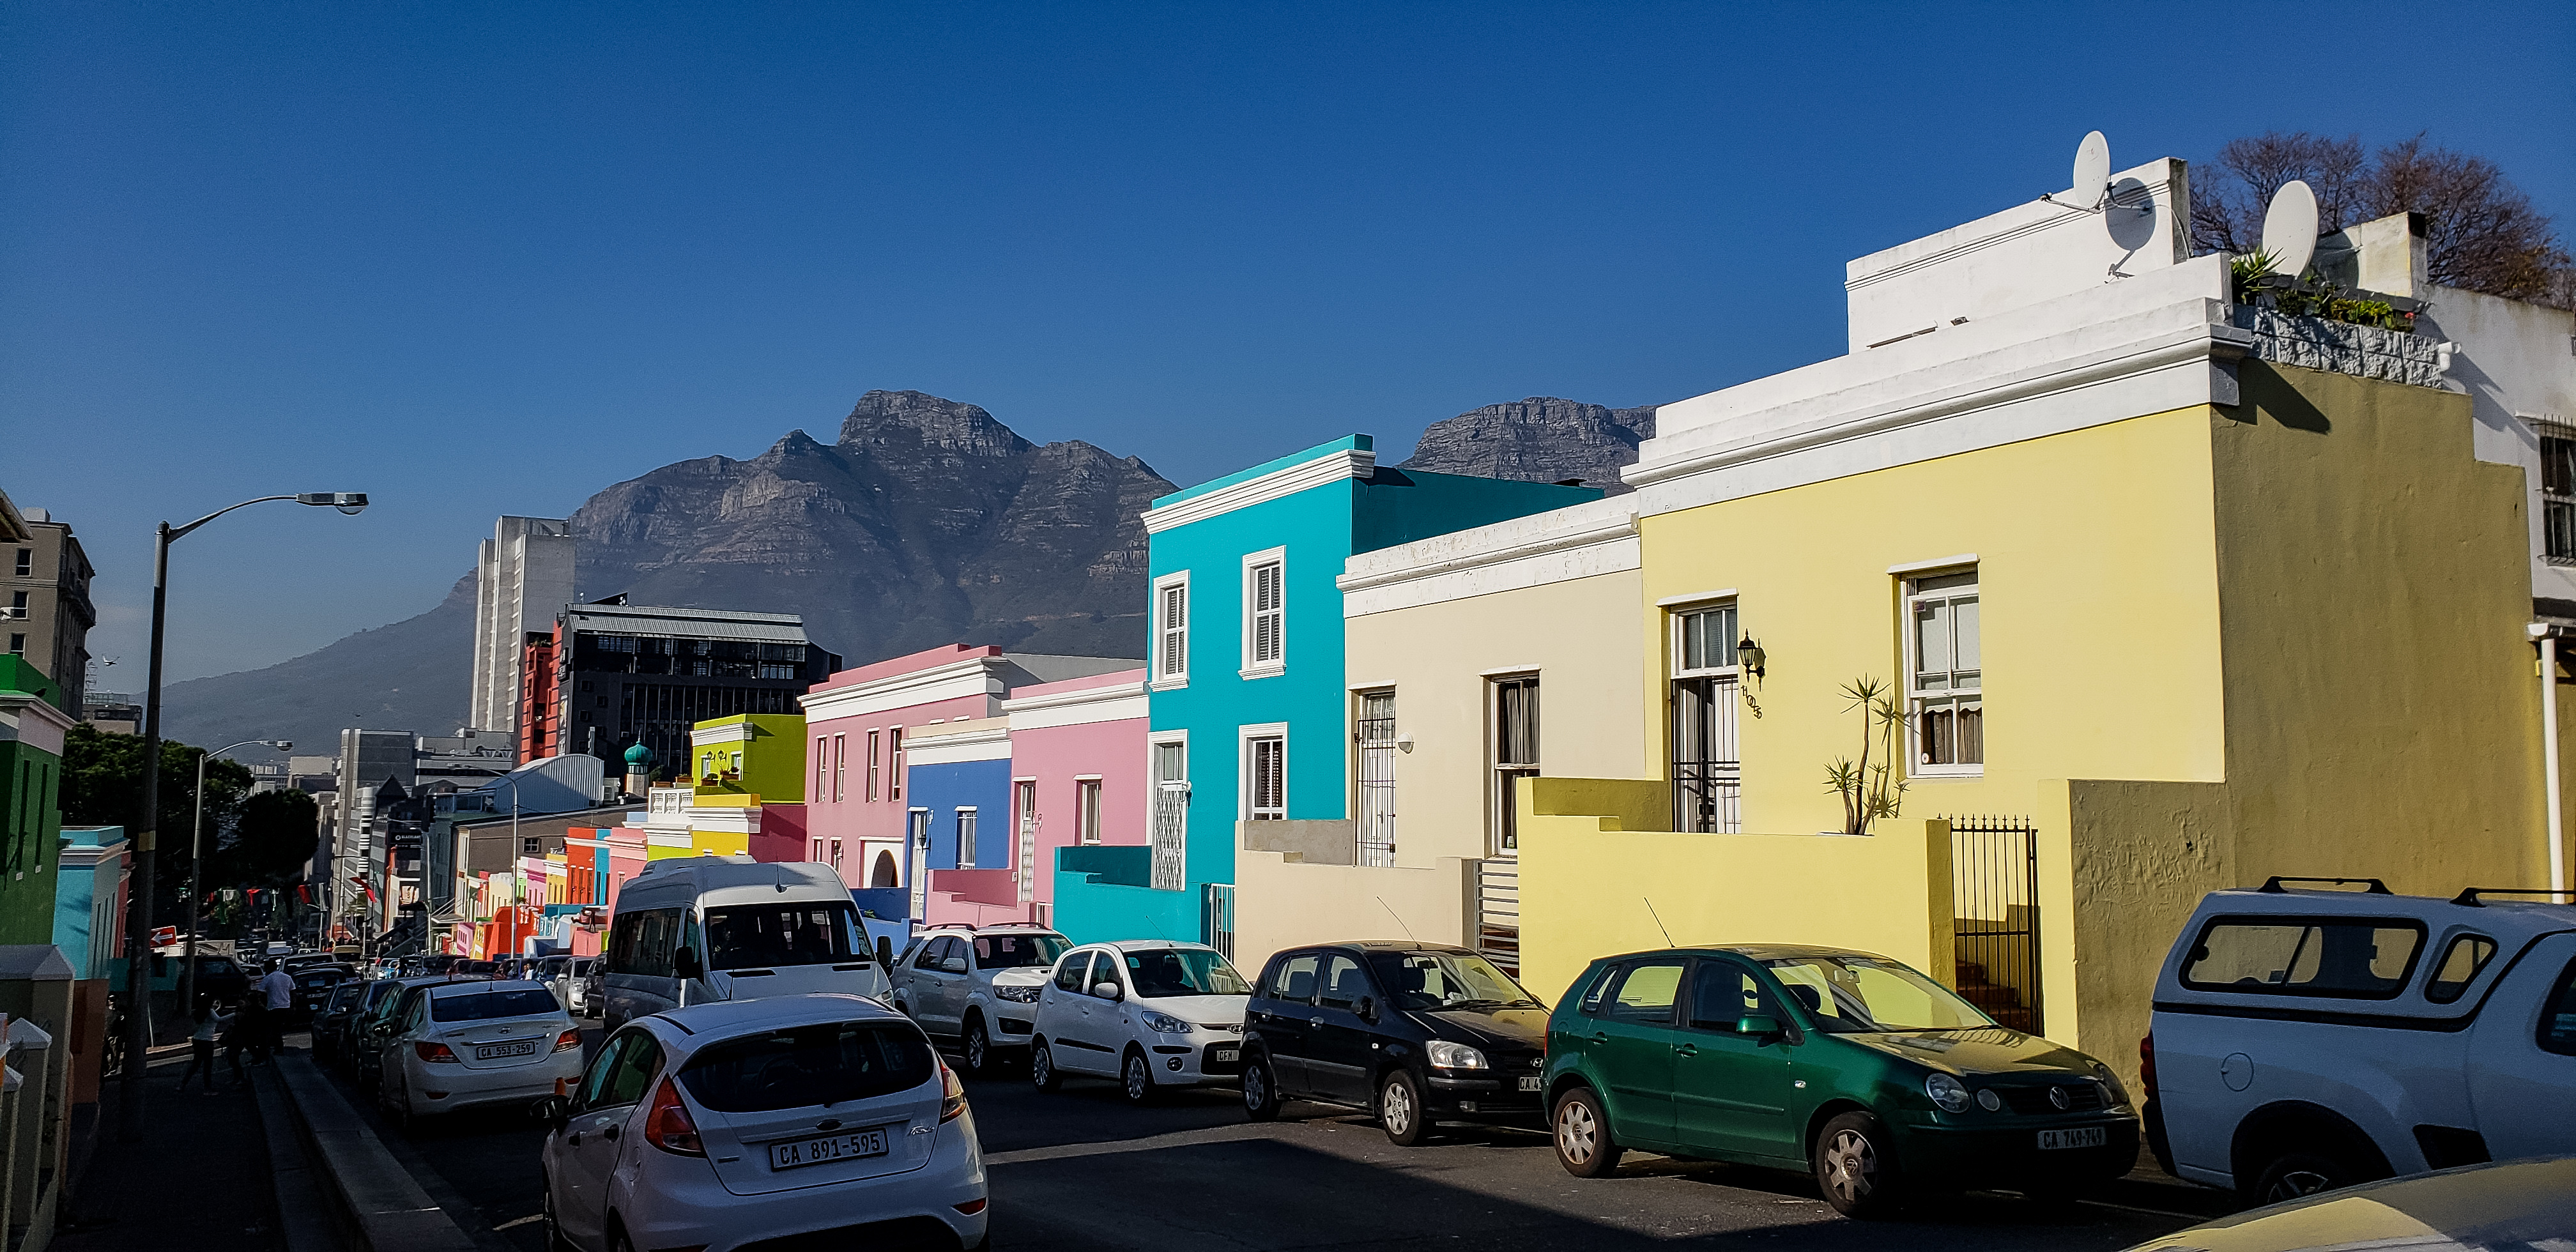 Why are Bo Kaap houses colorful? Cape Town, Western Cape, South Africa